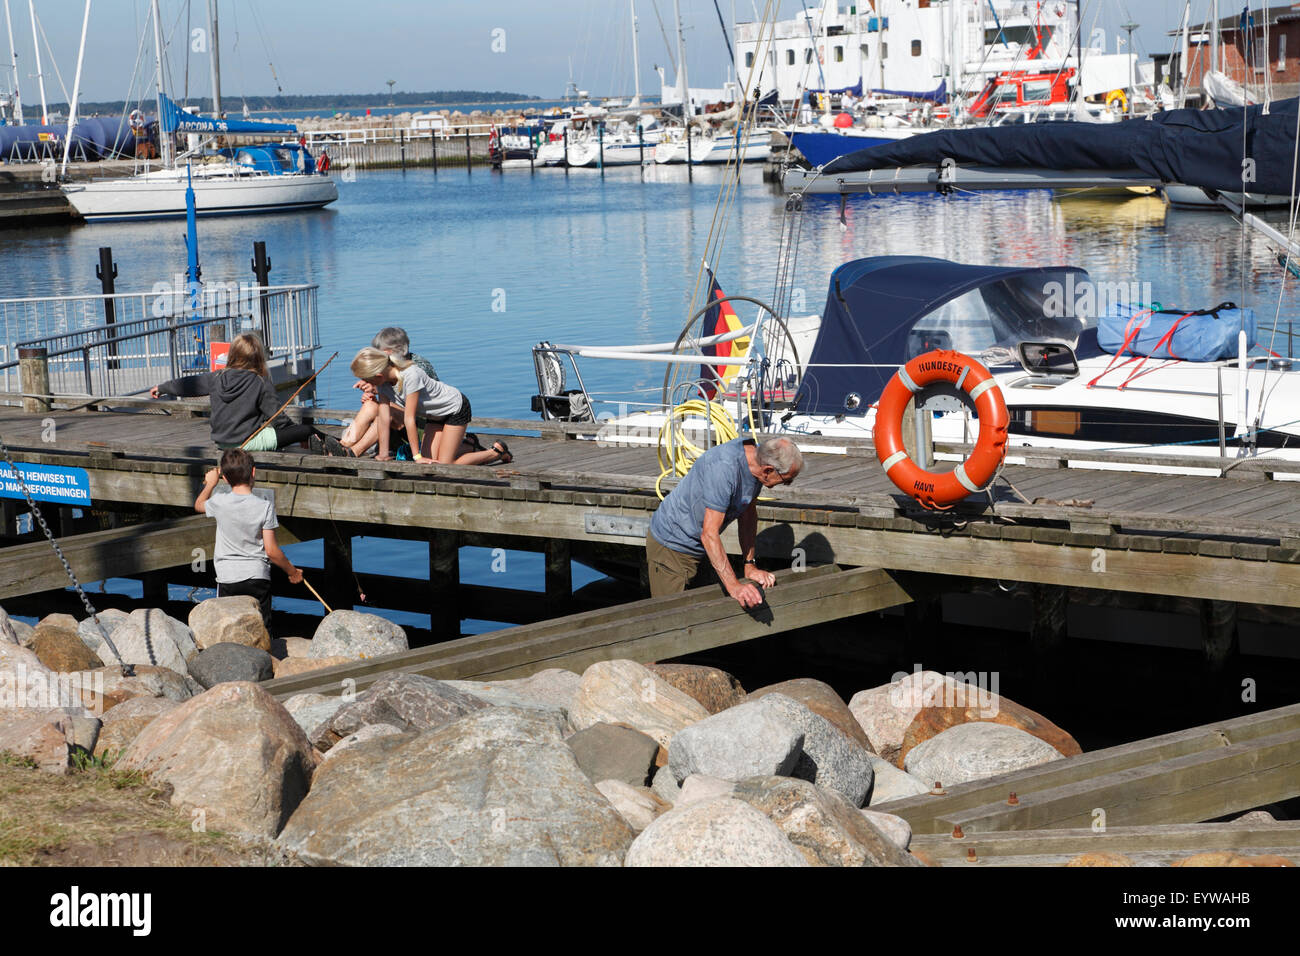 Tourist family on sailing vacation enjoy morning activities and cosy ambience at Hundested Harbour, Zealand, Denmark. - Stock Image